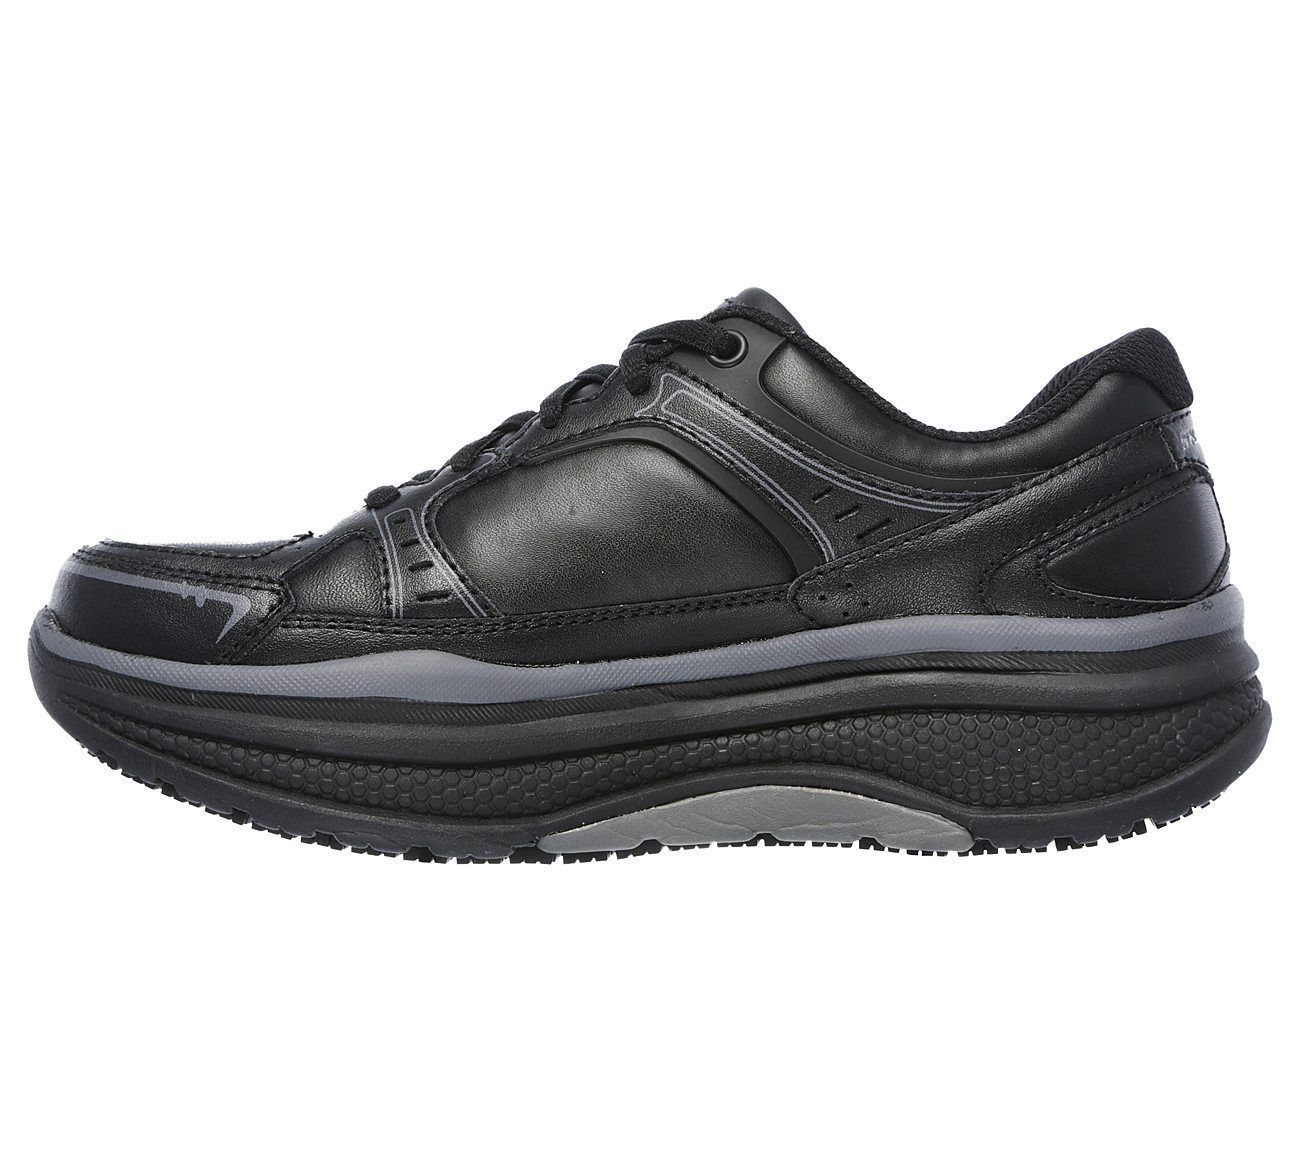 Skechers Work Black shoes Women Memory Foam Slip Resistant Rocker Comfort 77218 image 3